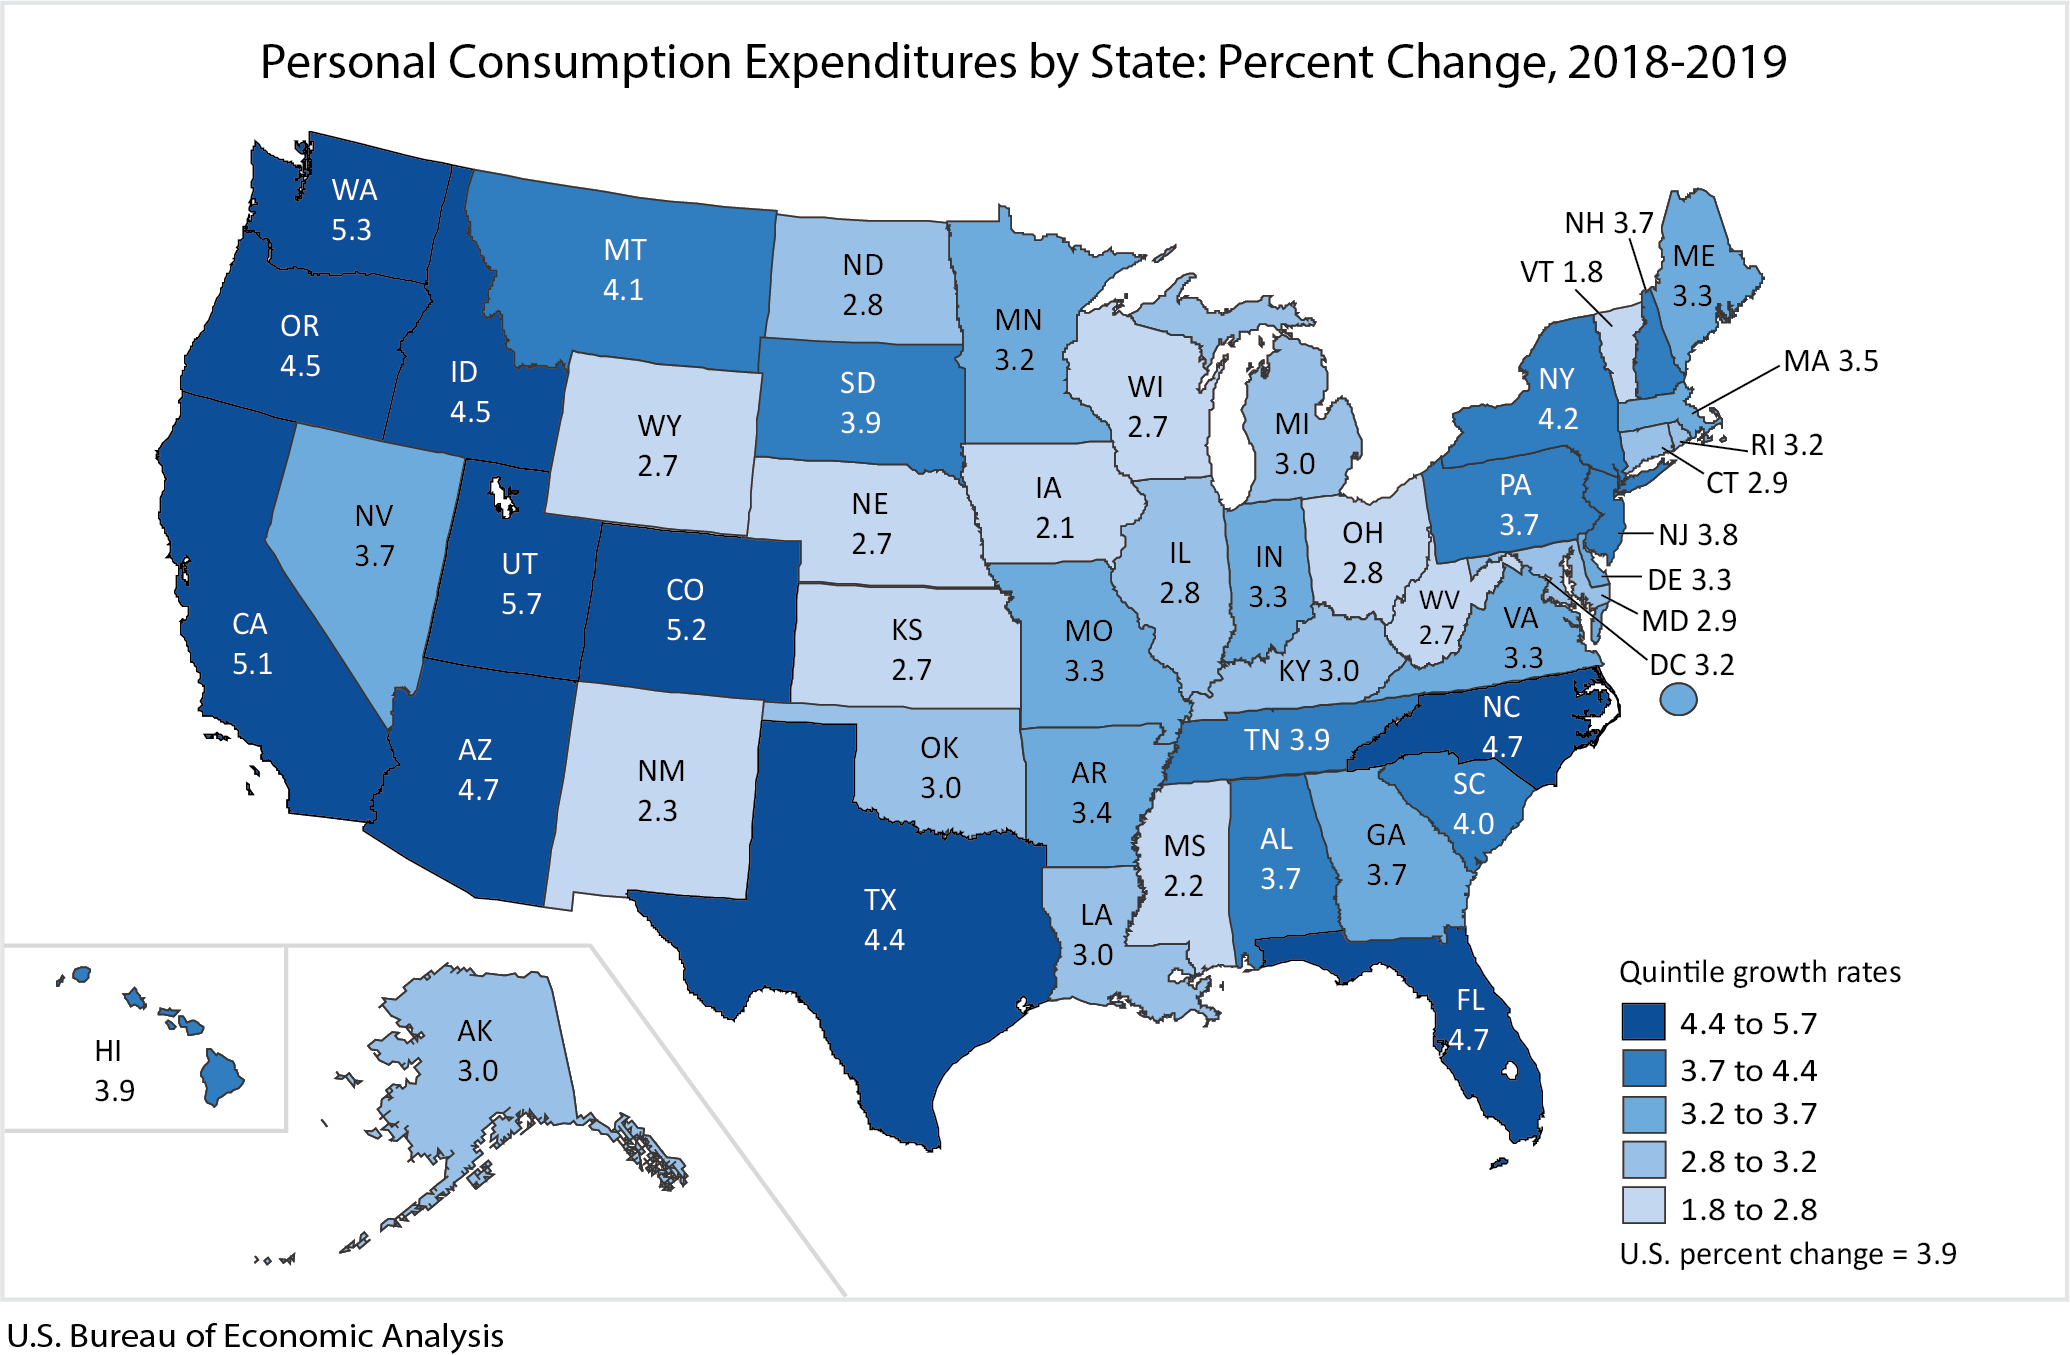 Map: Personal Consumption Expenditures by State: Percent Change, 2018-2019